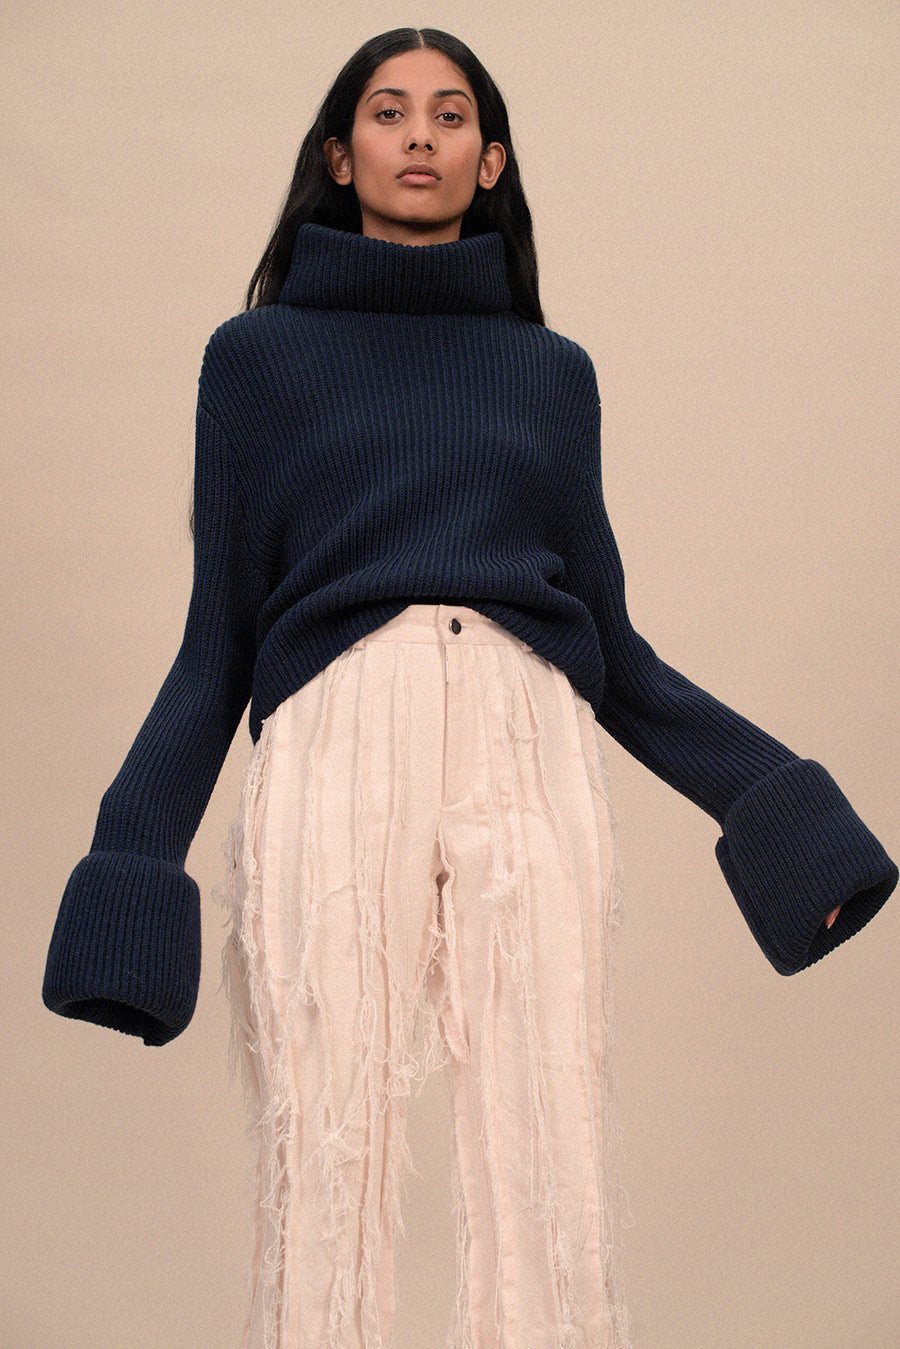 HIGH NECK SWEATER WITH CUFFED SLEEVES - PRE ORDER